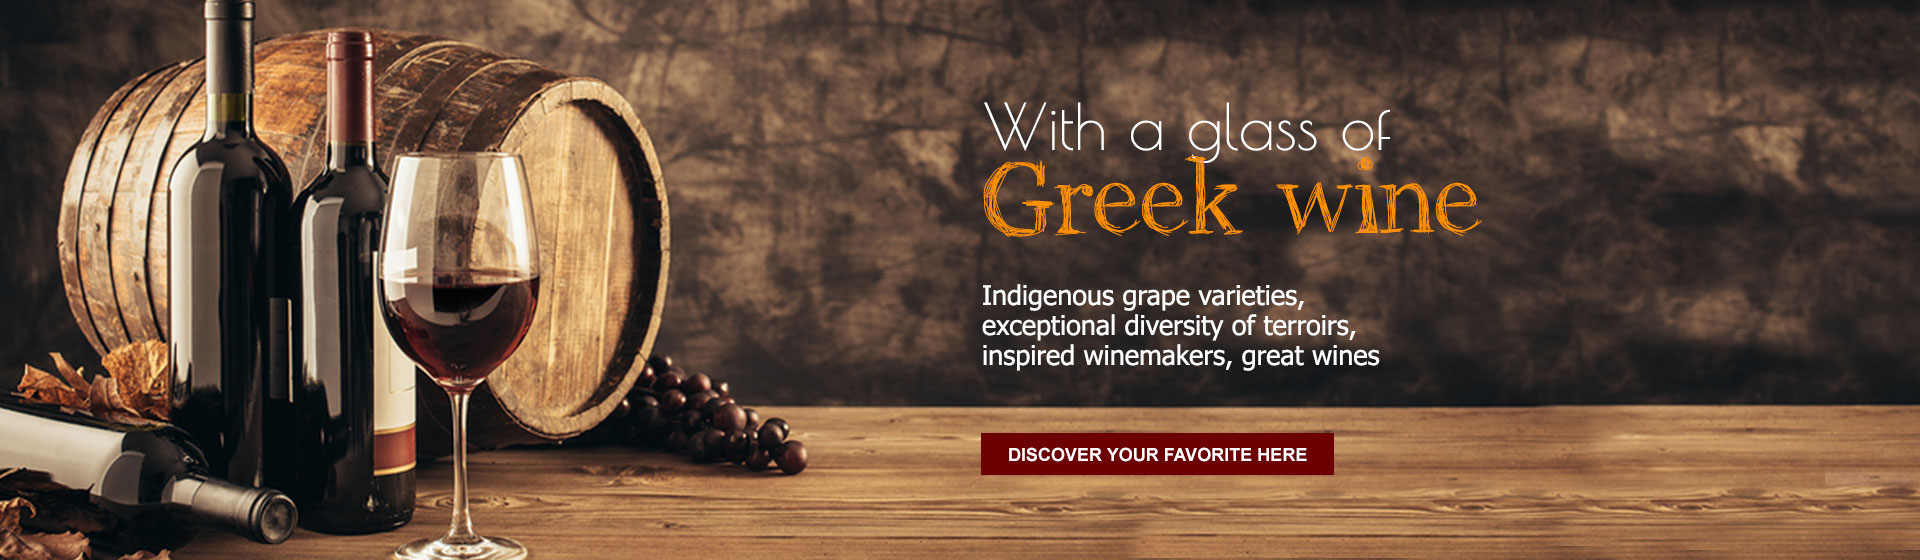 With a glass of Greek wine